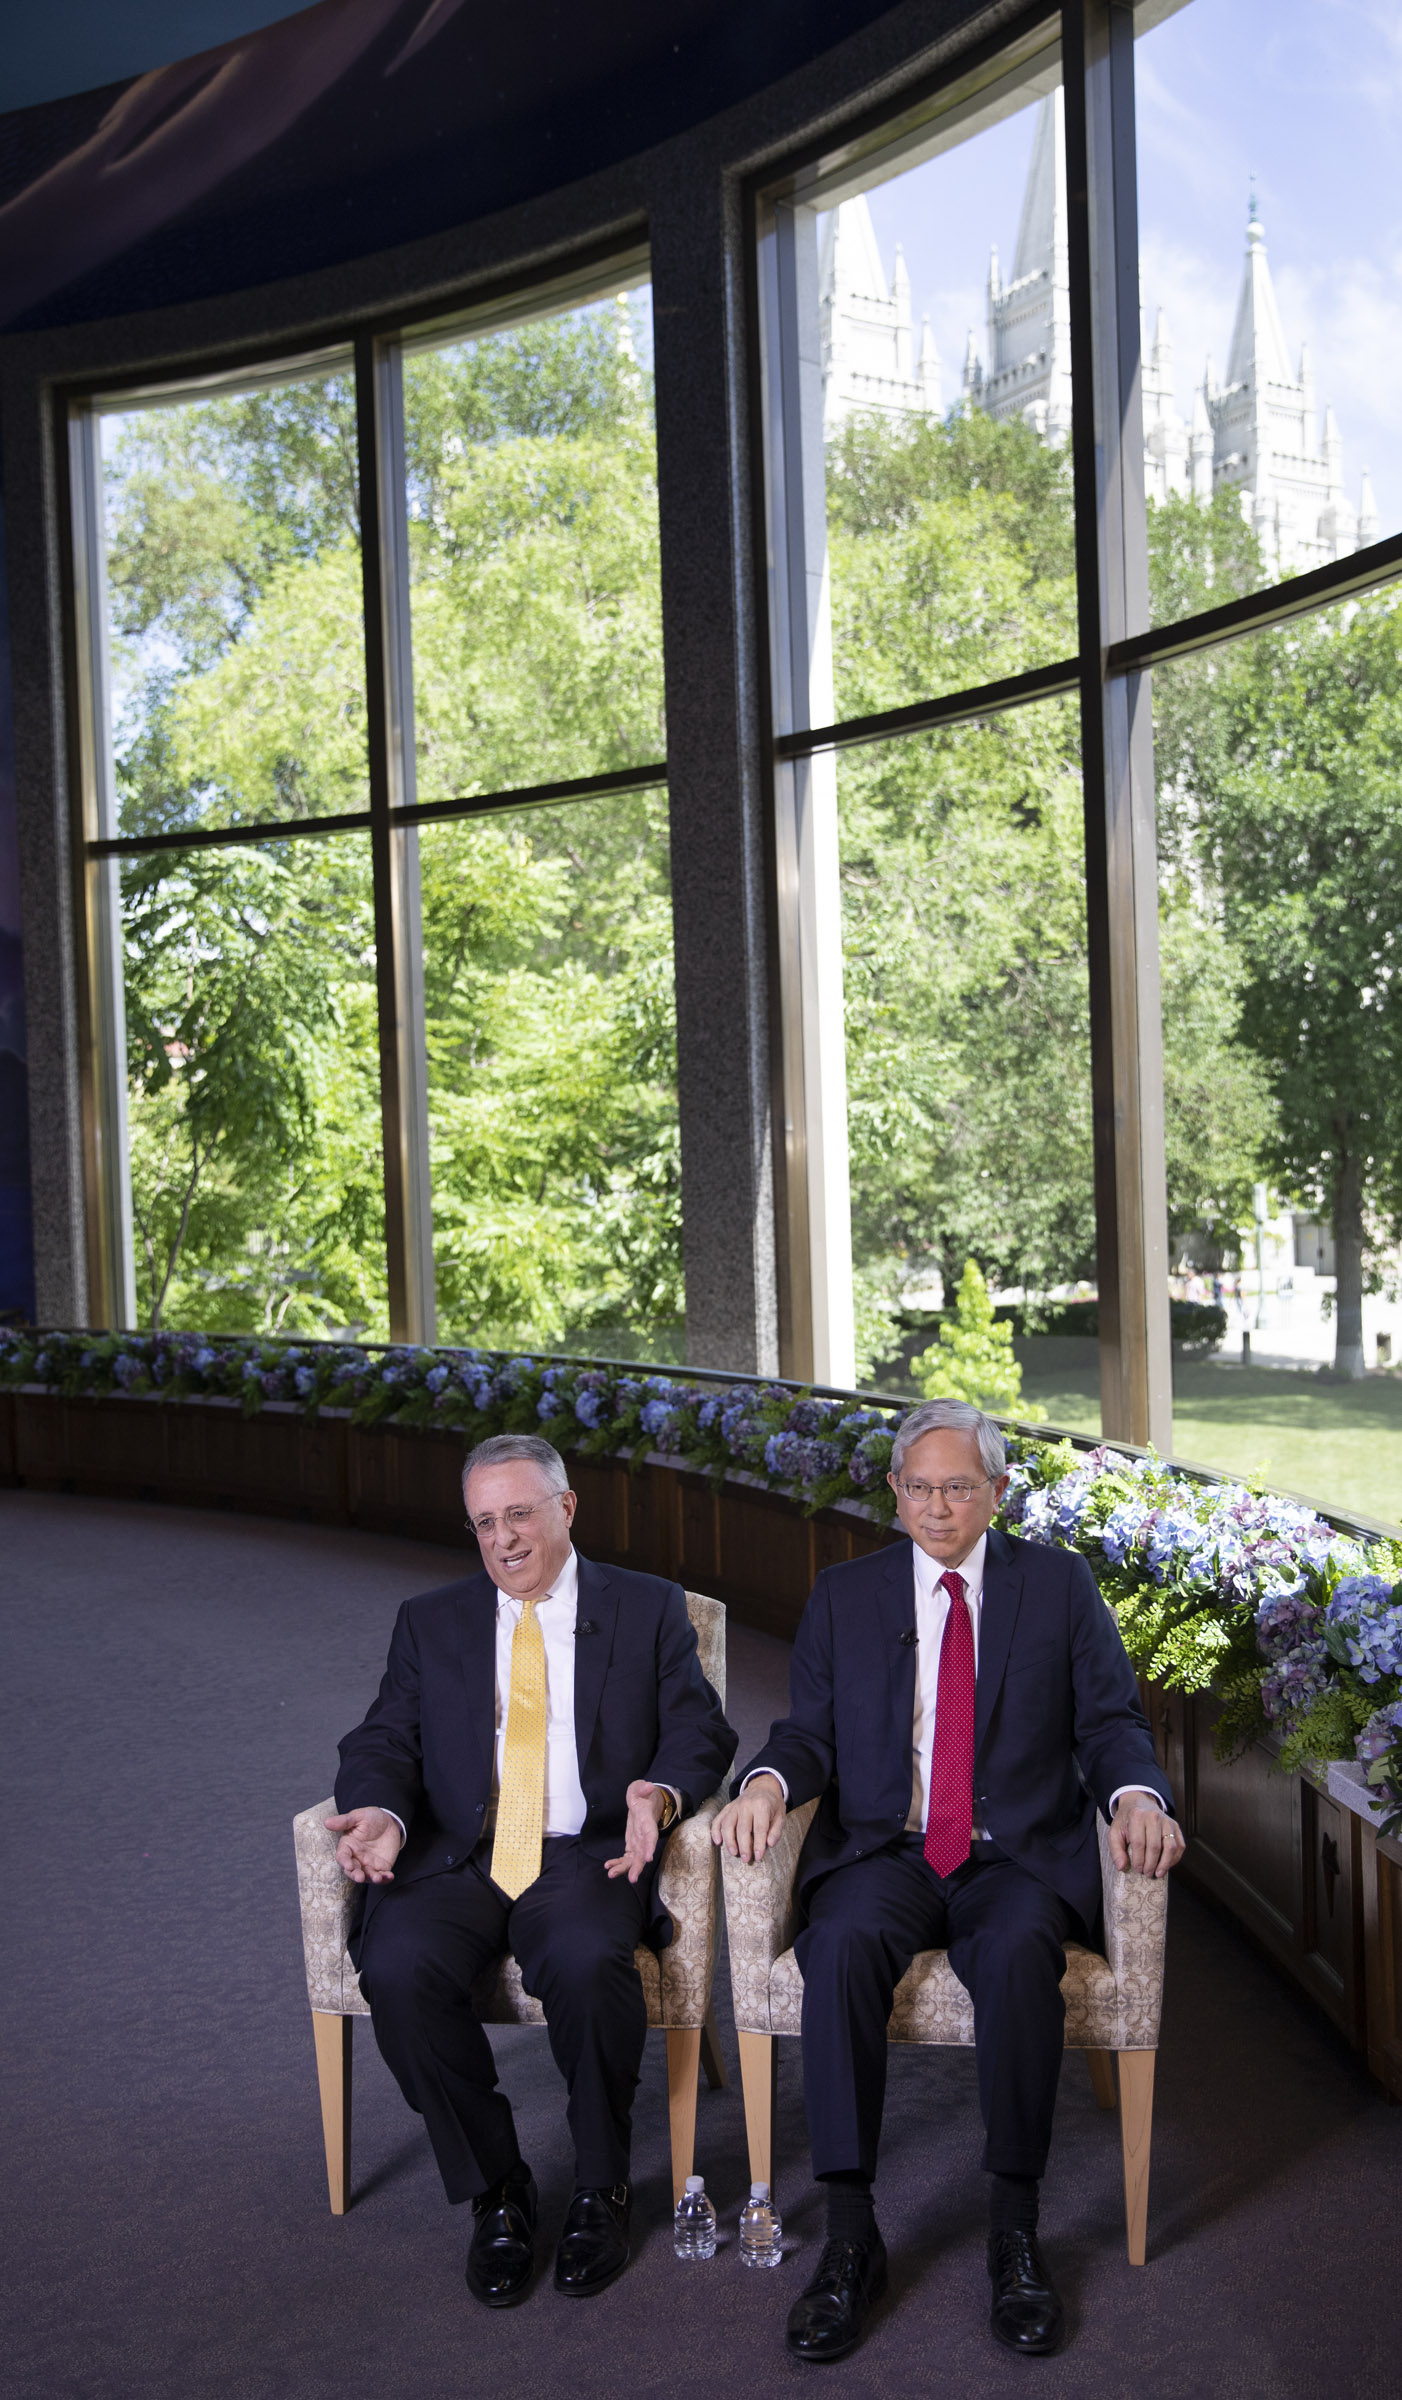 Elder Ulisses Soares, left, and Elder Gerrit W. Gong answer questions during an interview in the North Visitors Center on Temple Square in Salt Lake City on Thursday, June 28, 2018.